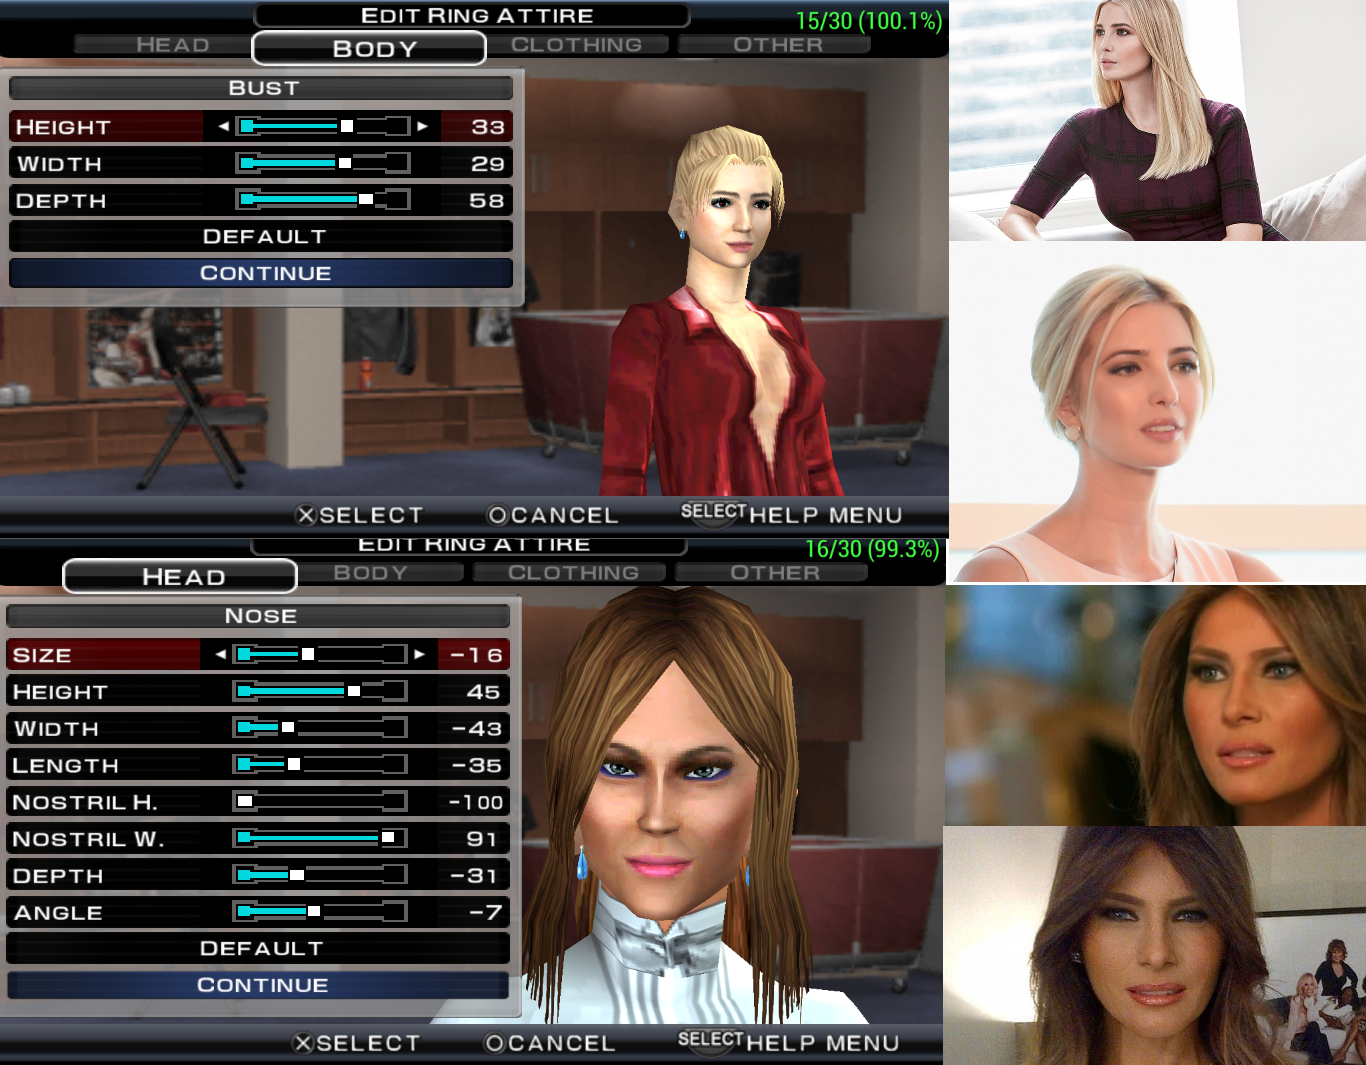 On an old WWE video game I tried to recreate Melania and Ivanka Trump. How